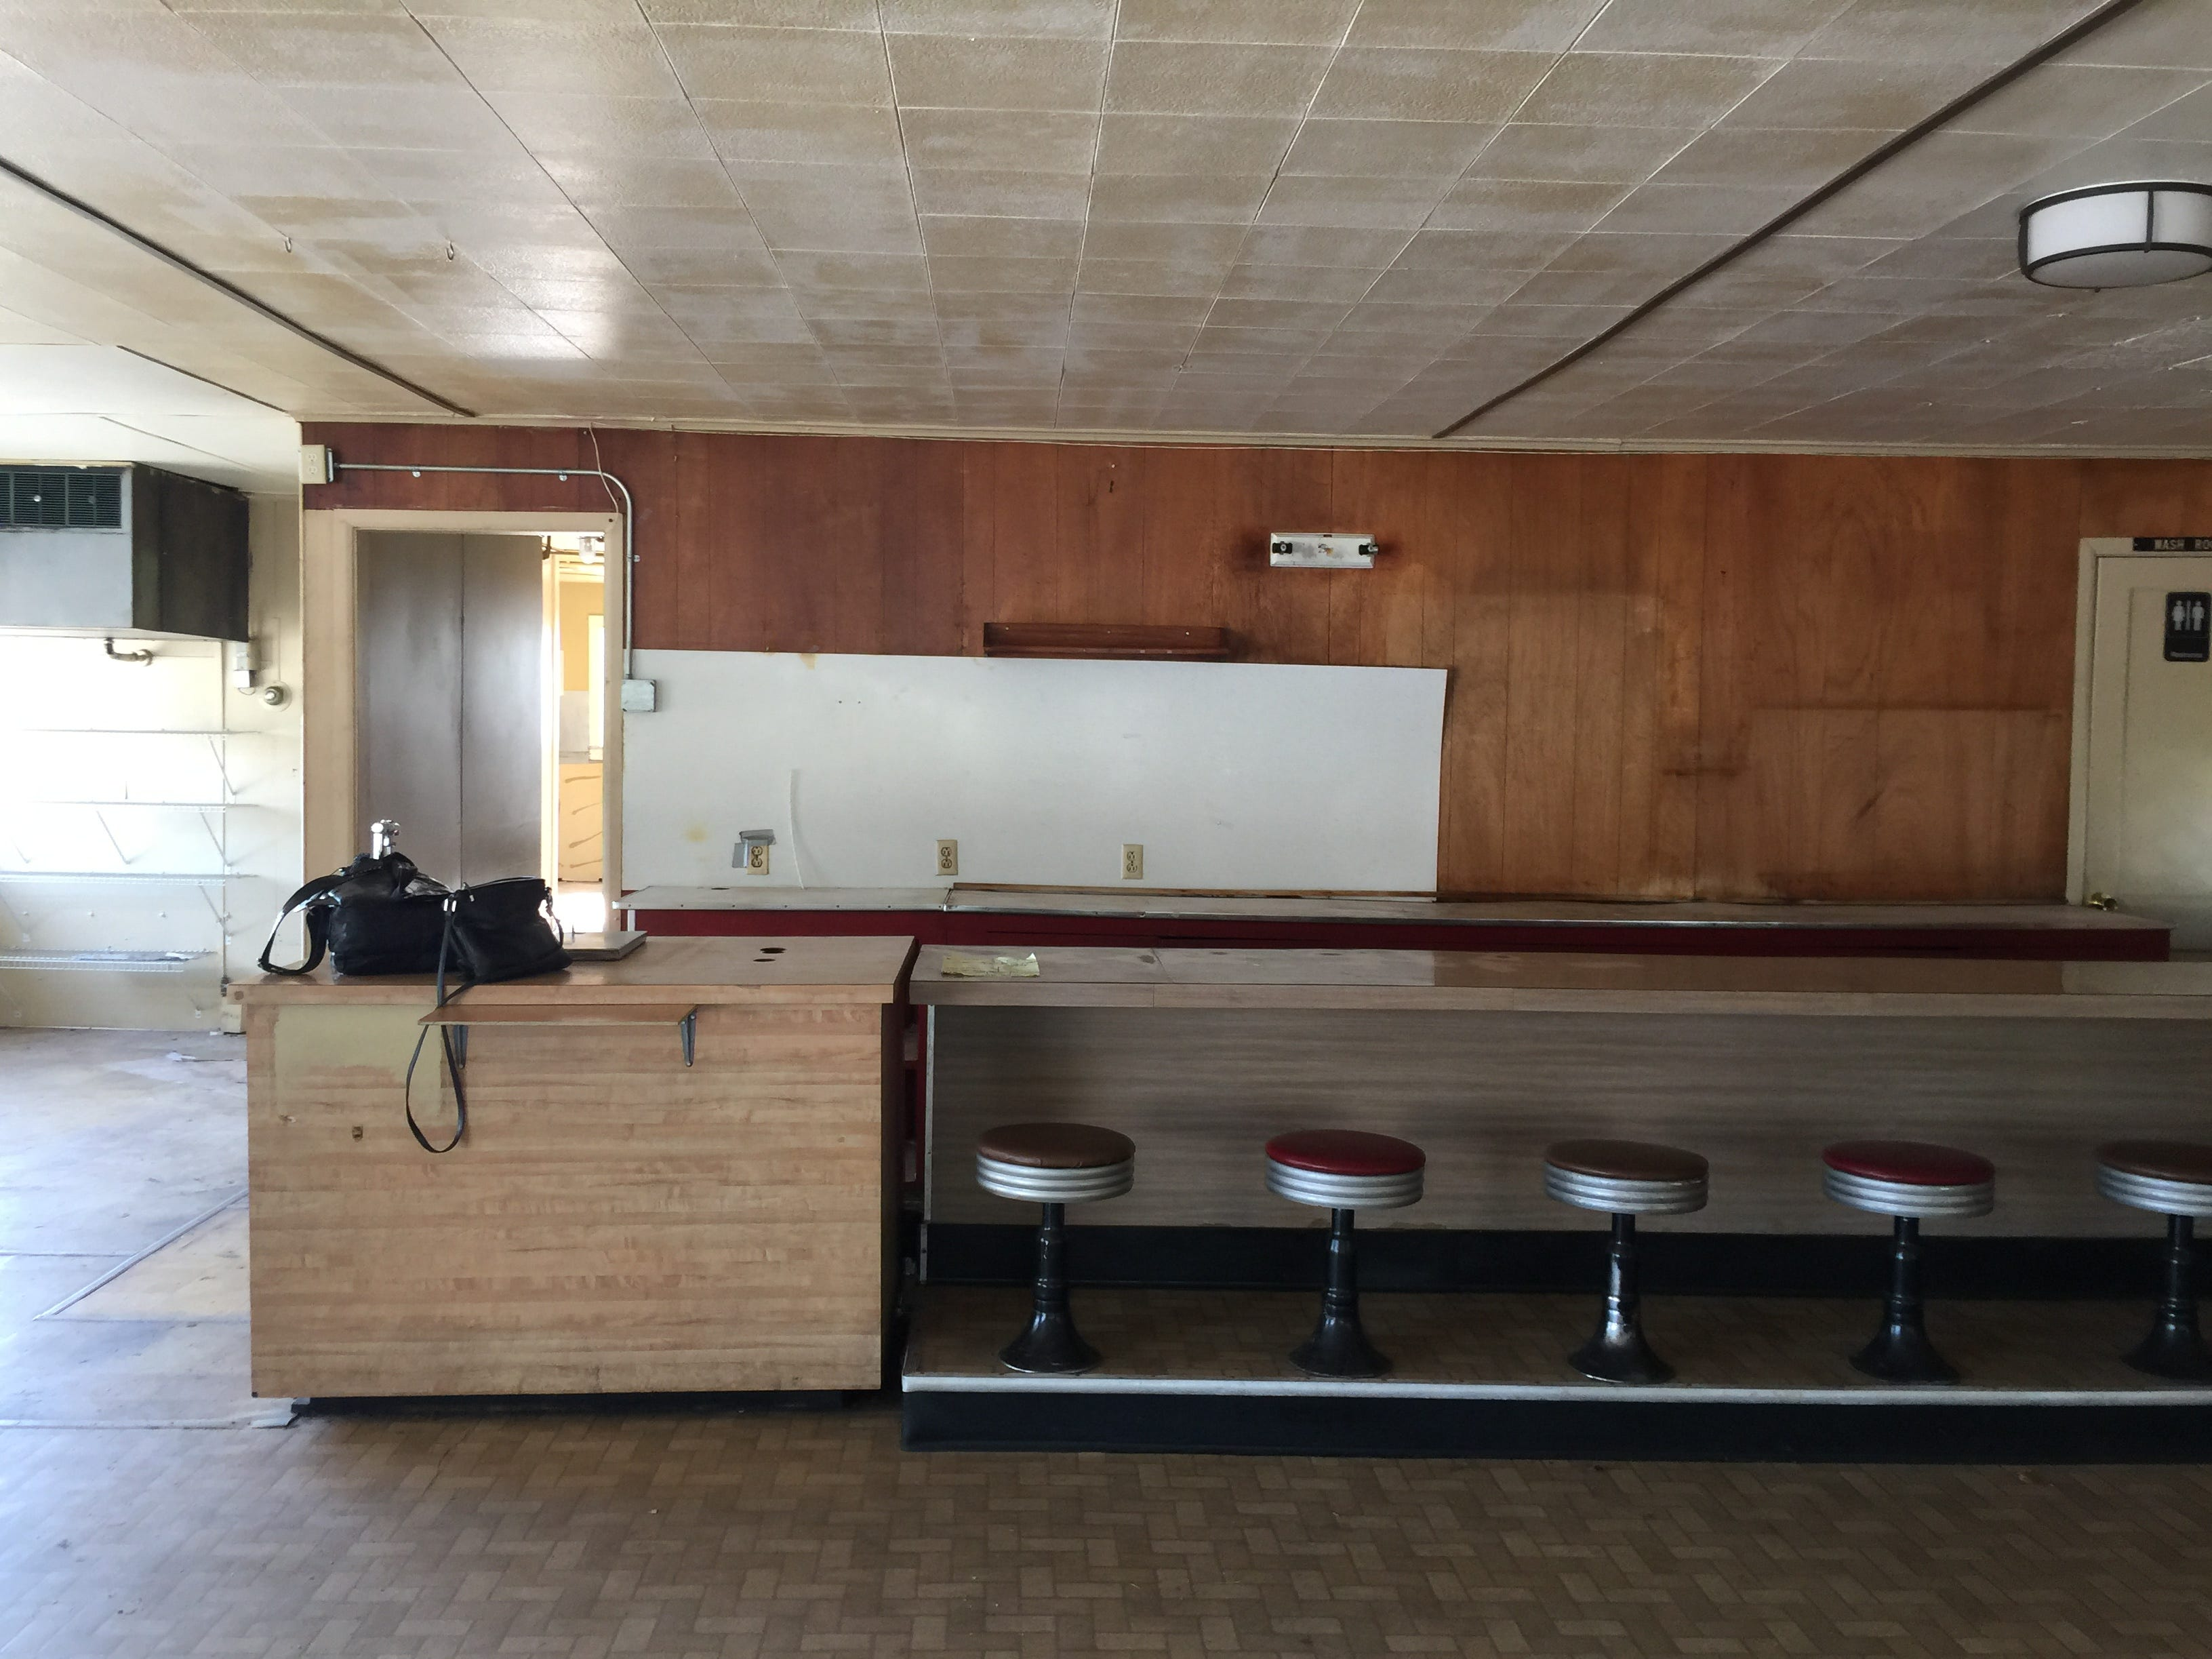 """Jeannie Breshears, new owner of what was once Aunt Martha's Pancake House, says the ceiling has been raised and the building -- inside and outside -- will be """"unrecognizable."""""""